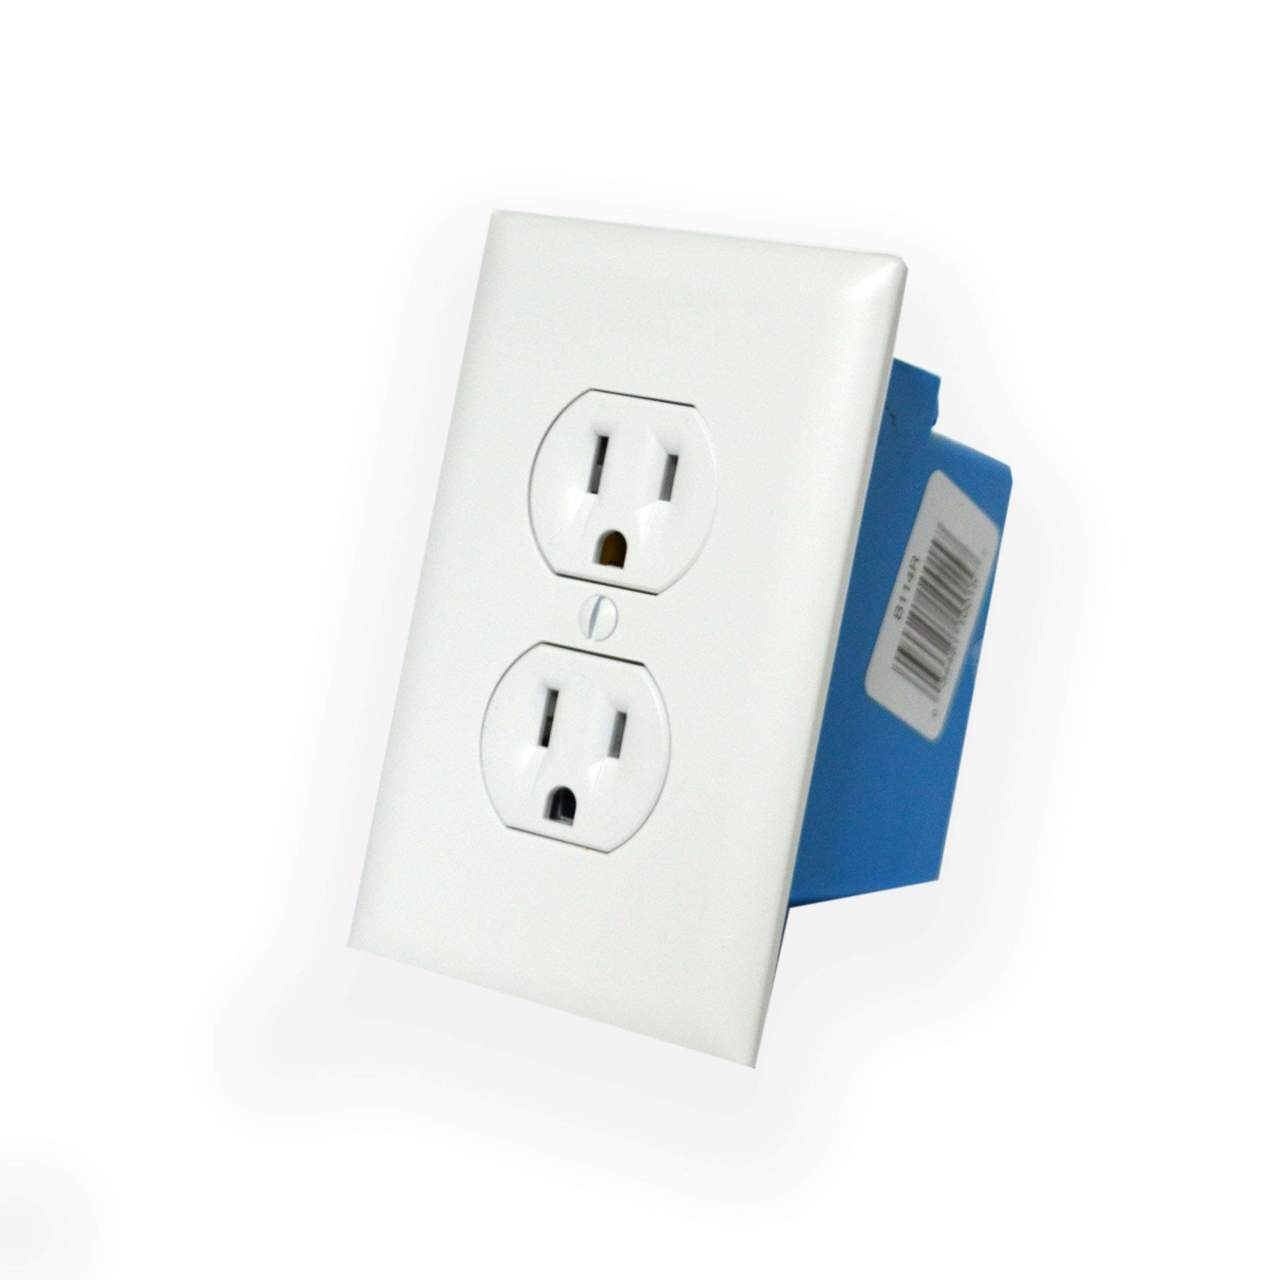 WiFi Wall Outlet Hidden Spy Camera